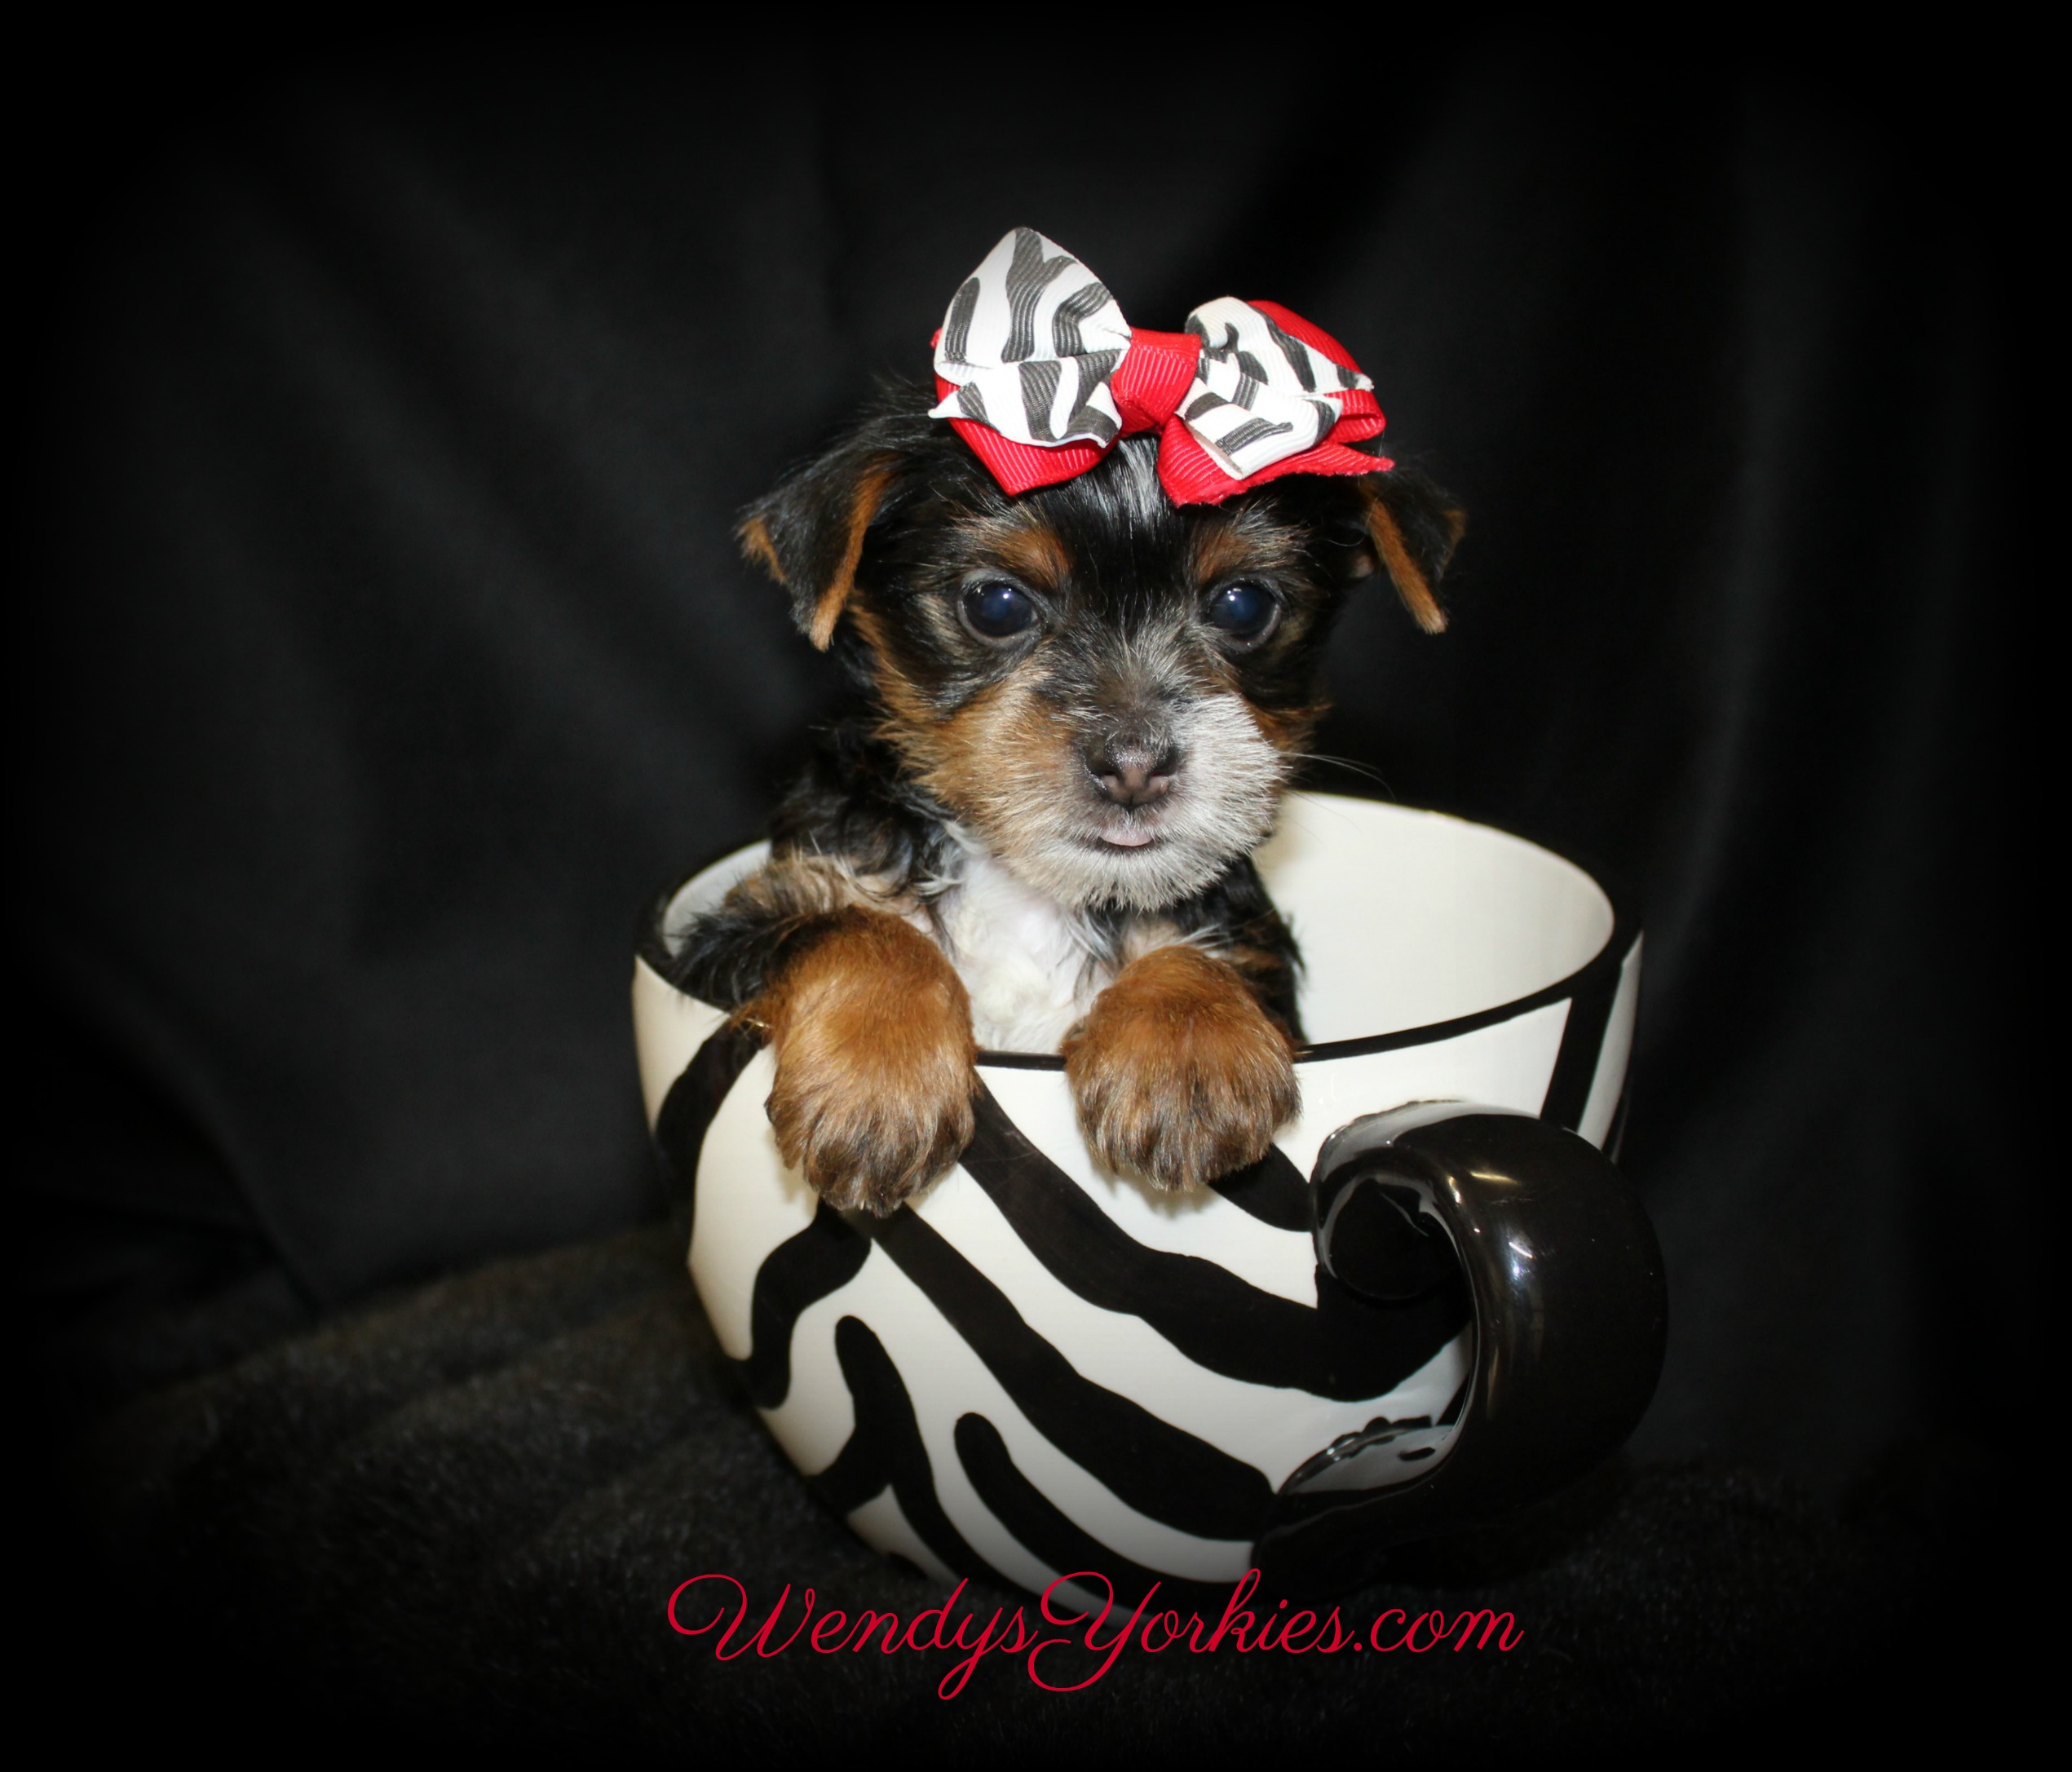 Parti Yorkie puppy for sale in Texas, WendysYorkies.com